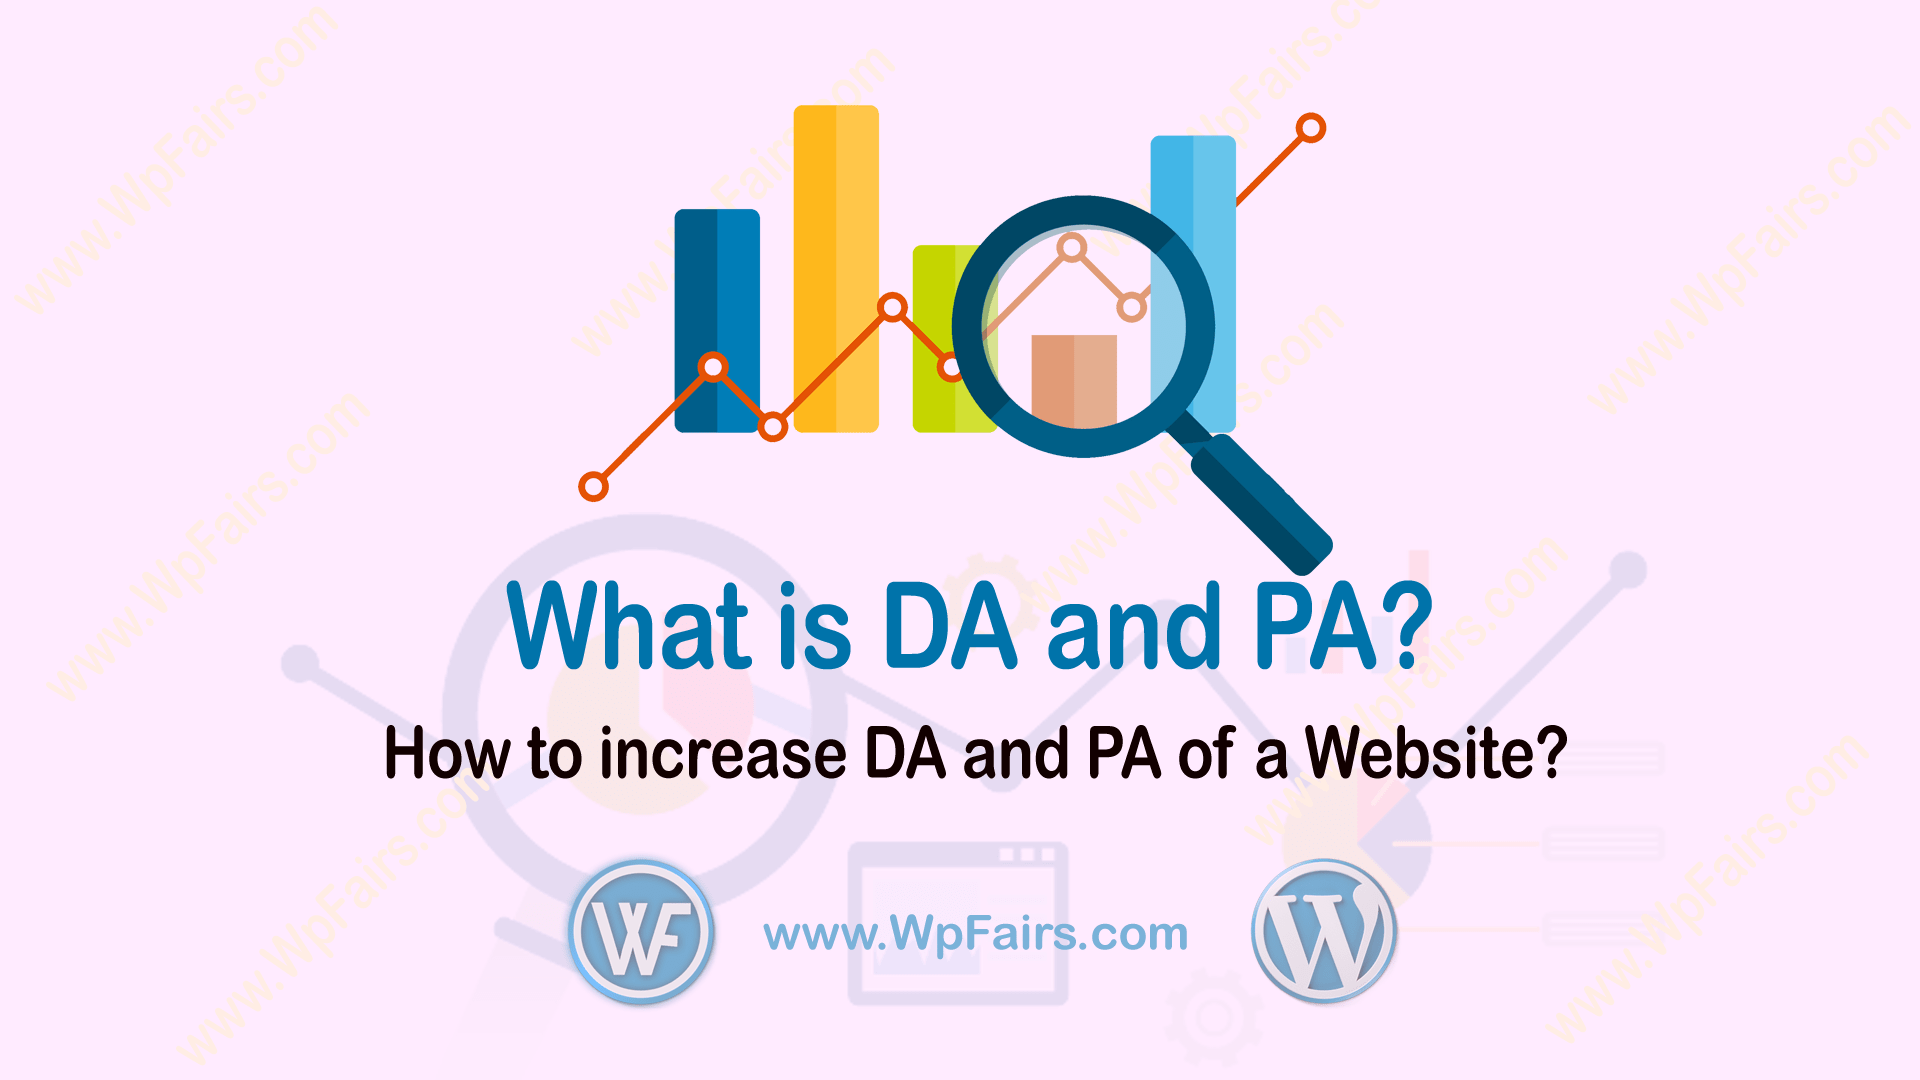 What is DA and PA - How to increase DA and PA of a Website